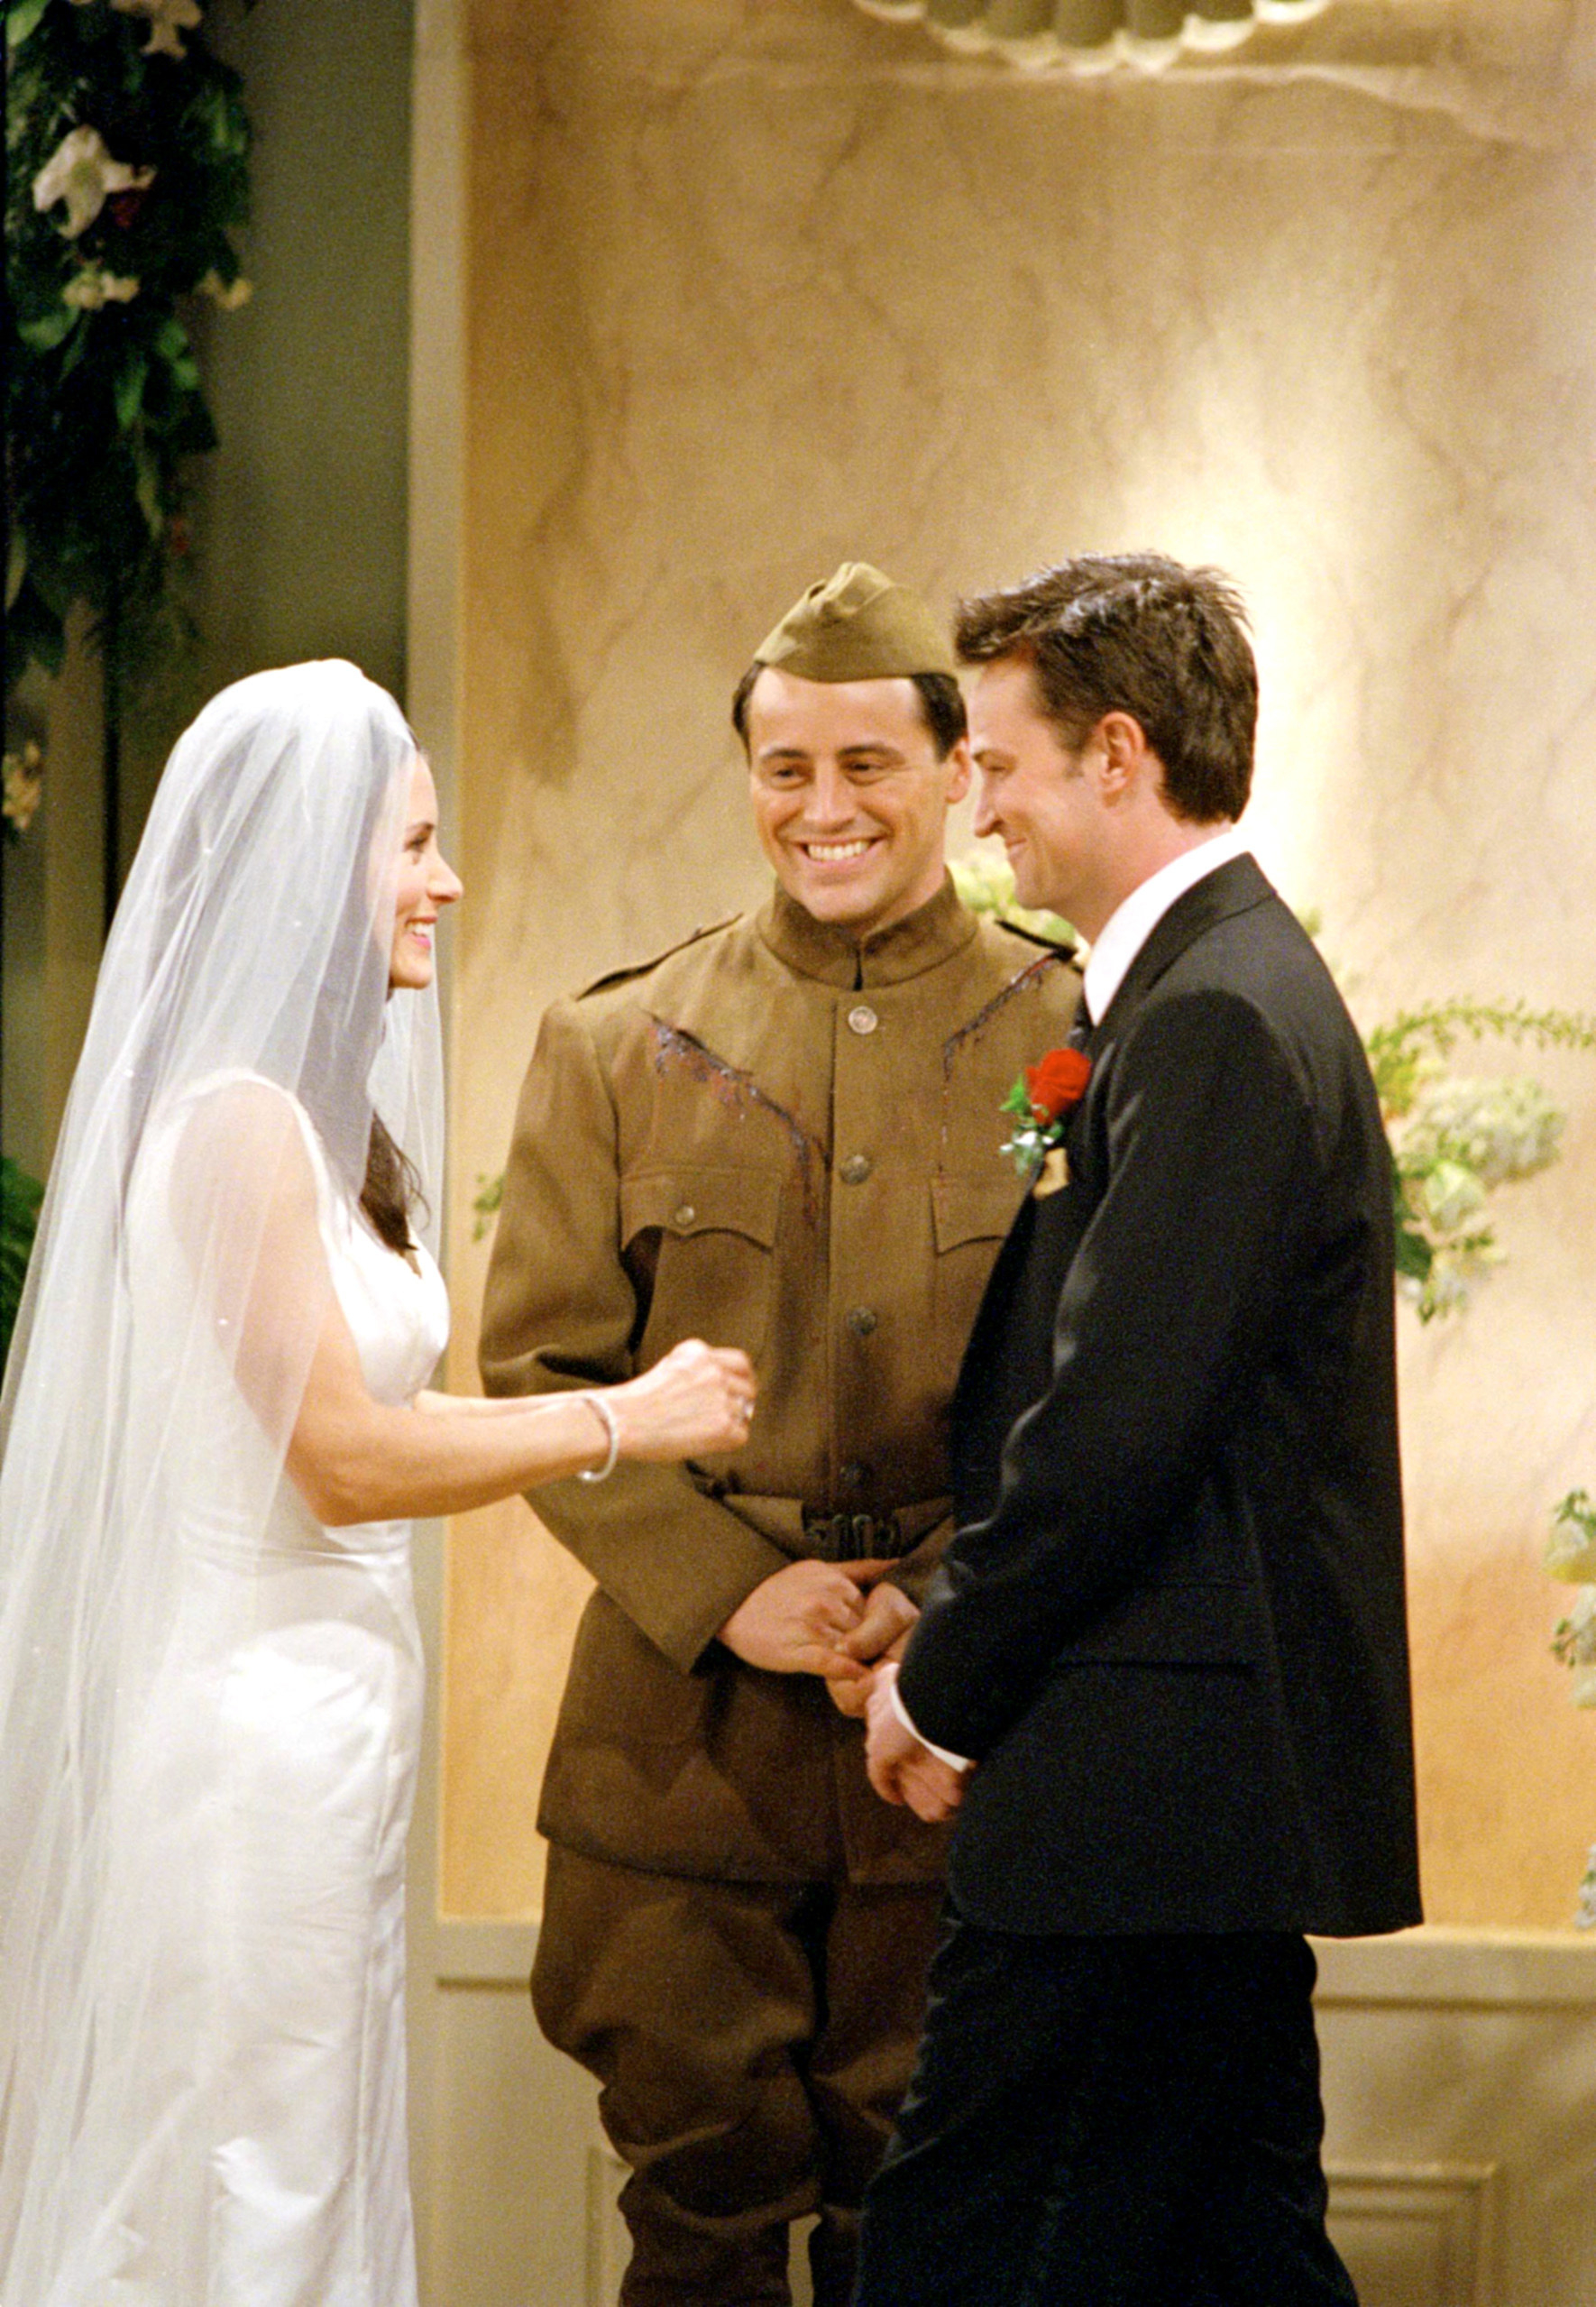 Monica and Chandler getting married